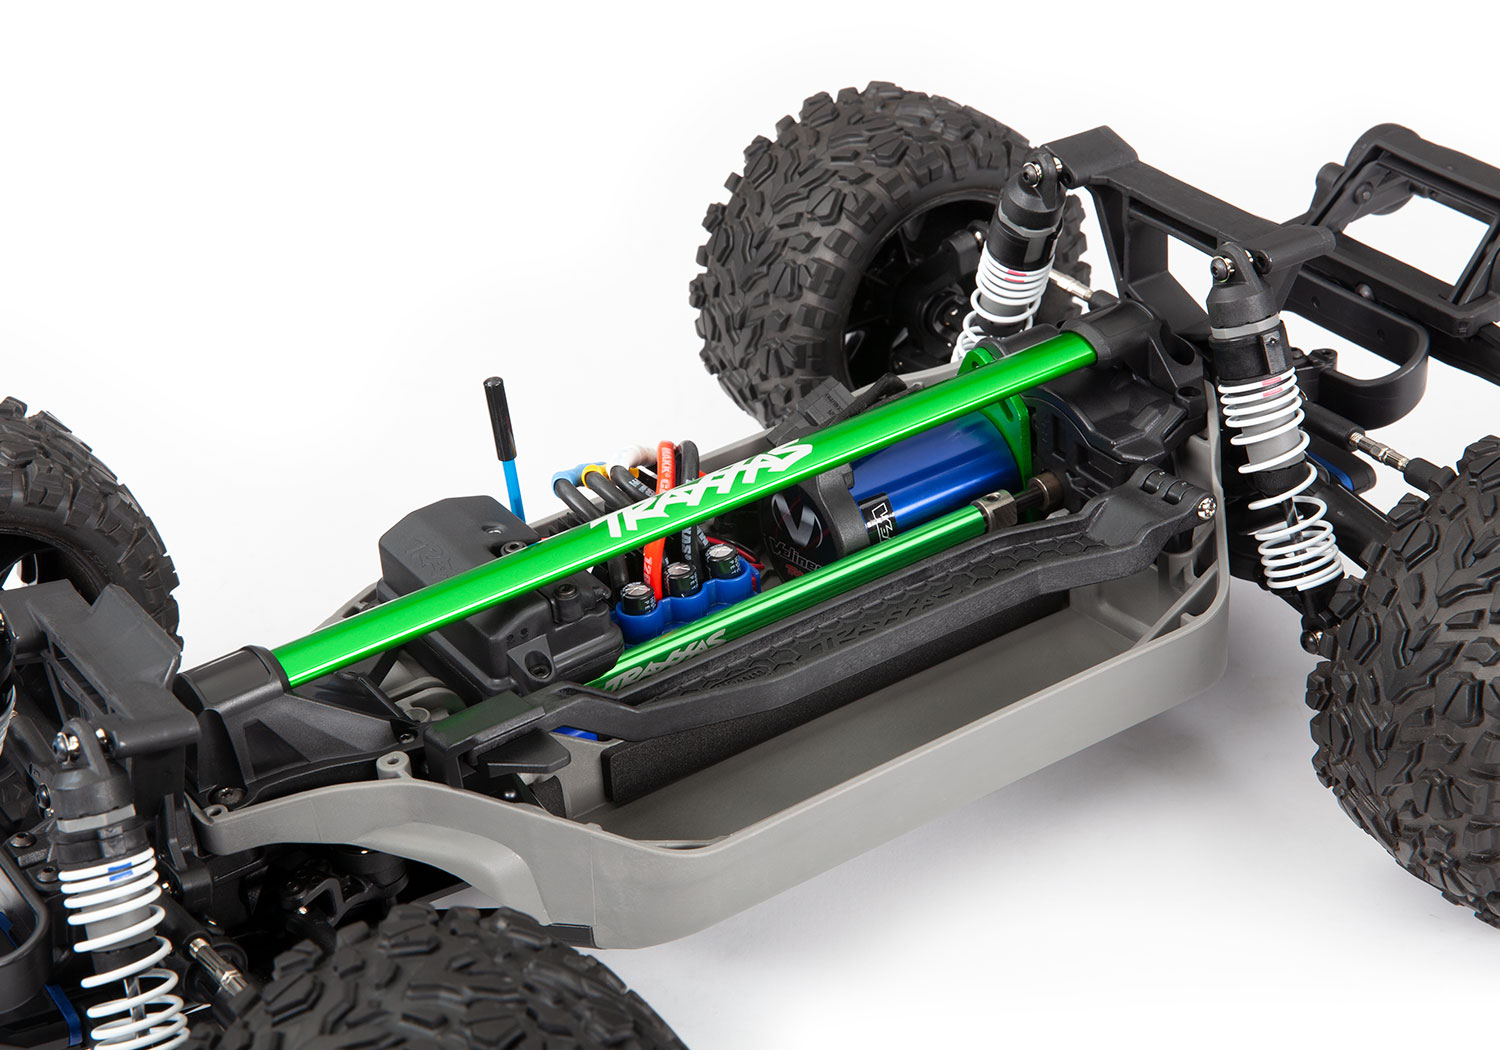 Rustler 4X4 installed chassis brace